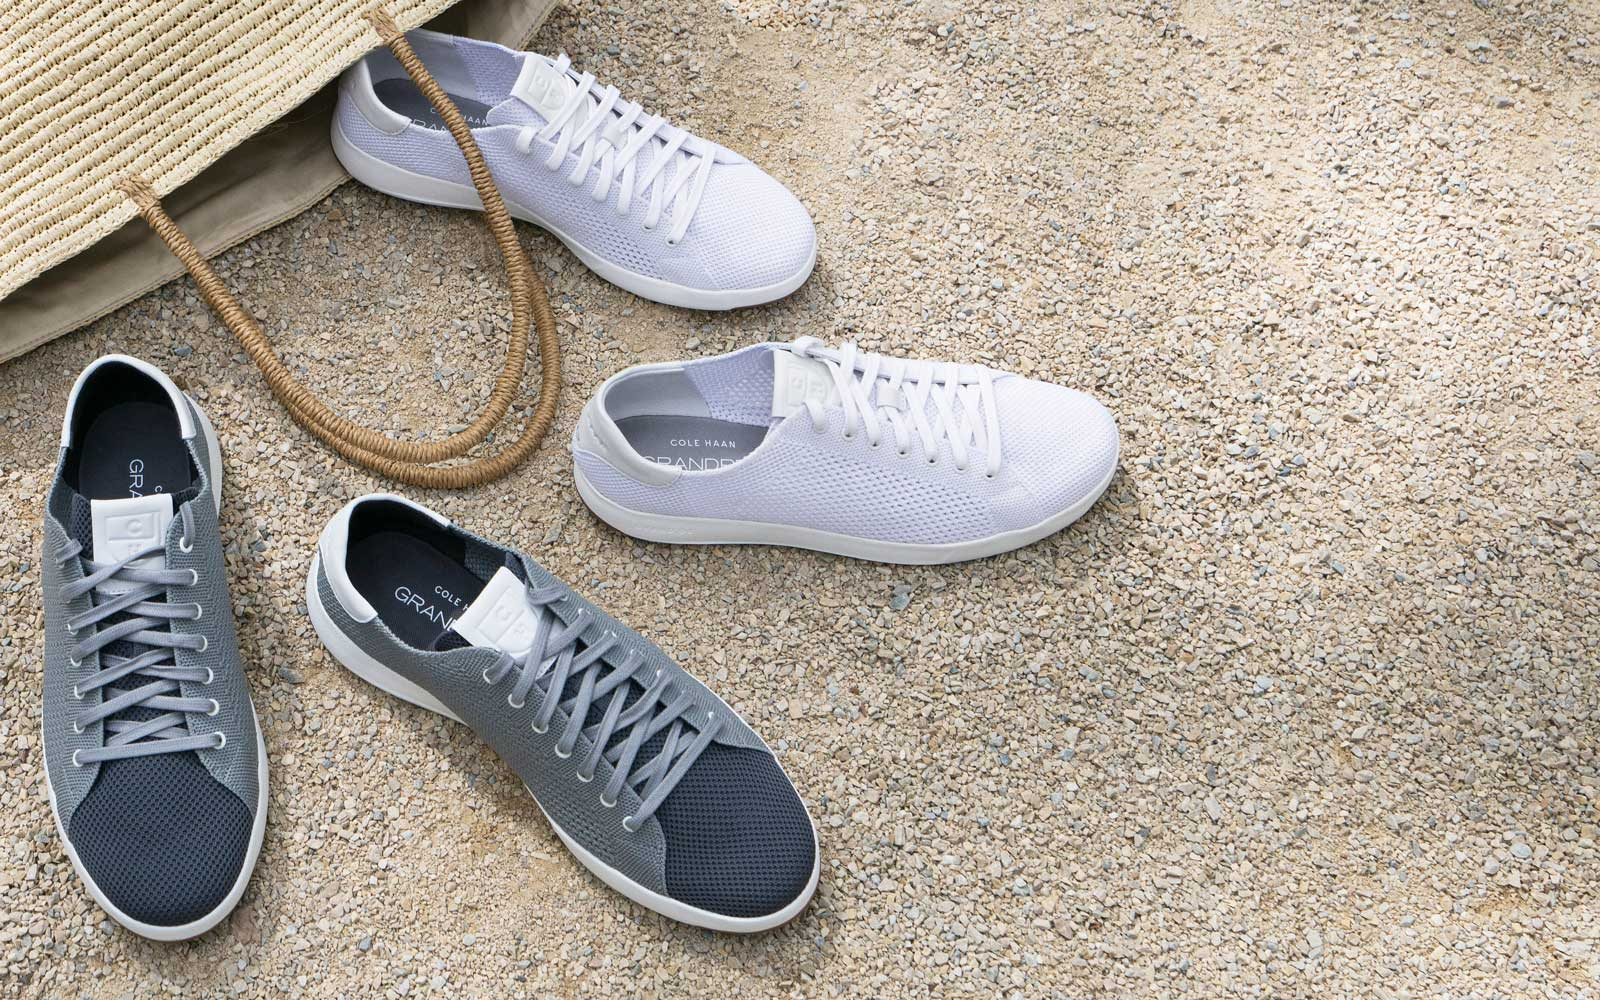 Cole Haan's new knit sneaker is the perfect travel shoe